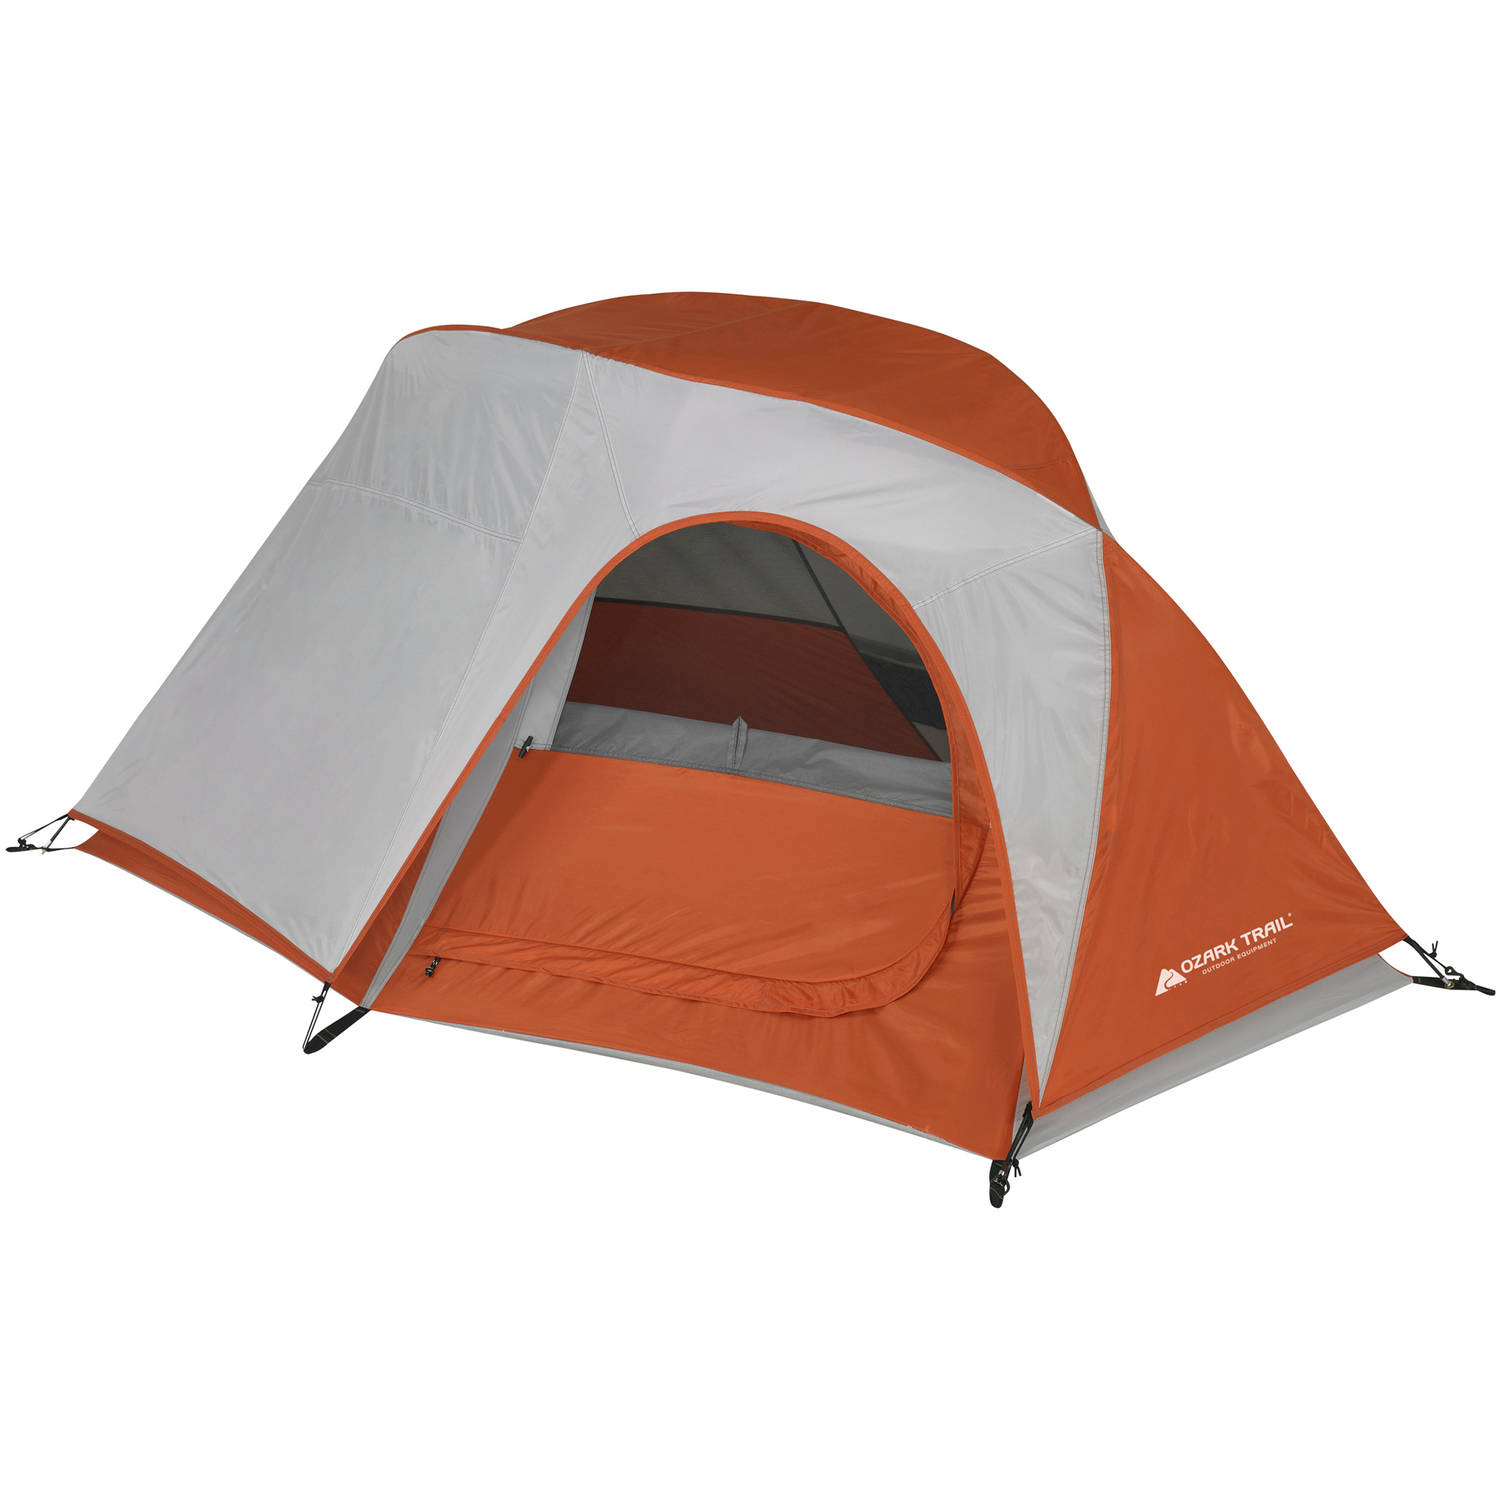 sc 1 st  Walmart : lightweight one man tents - memphite.com